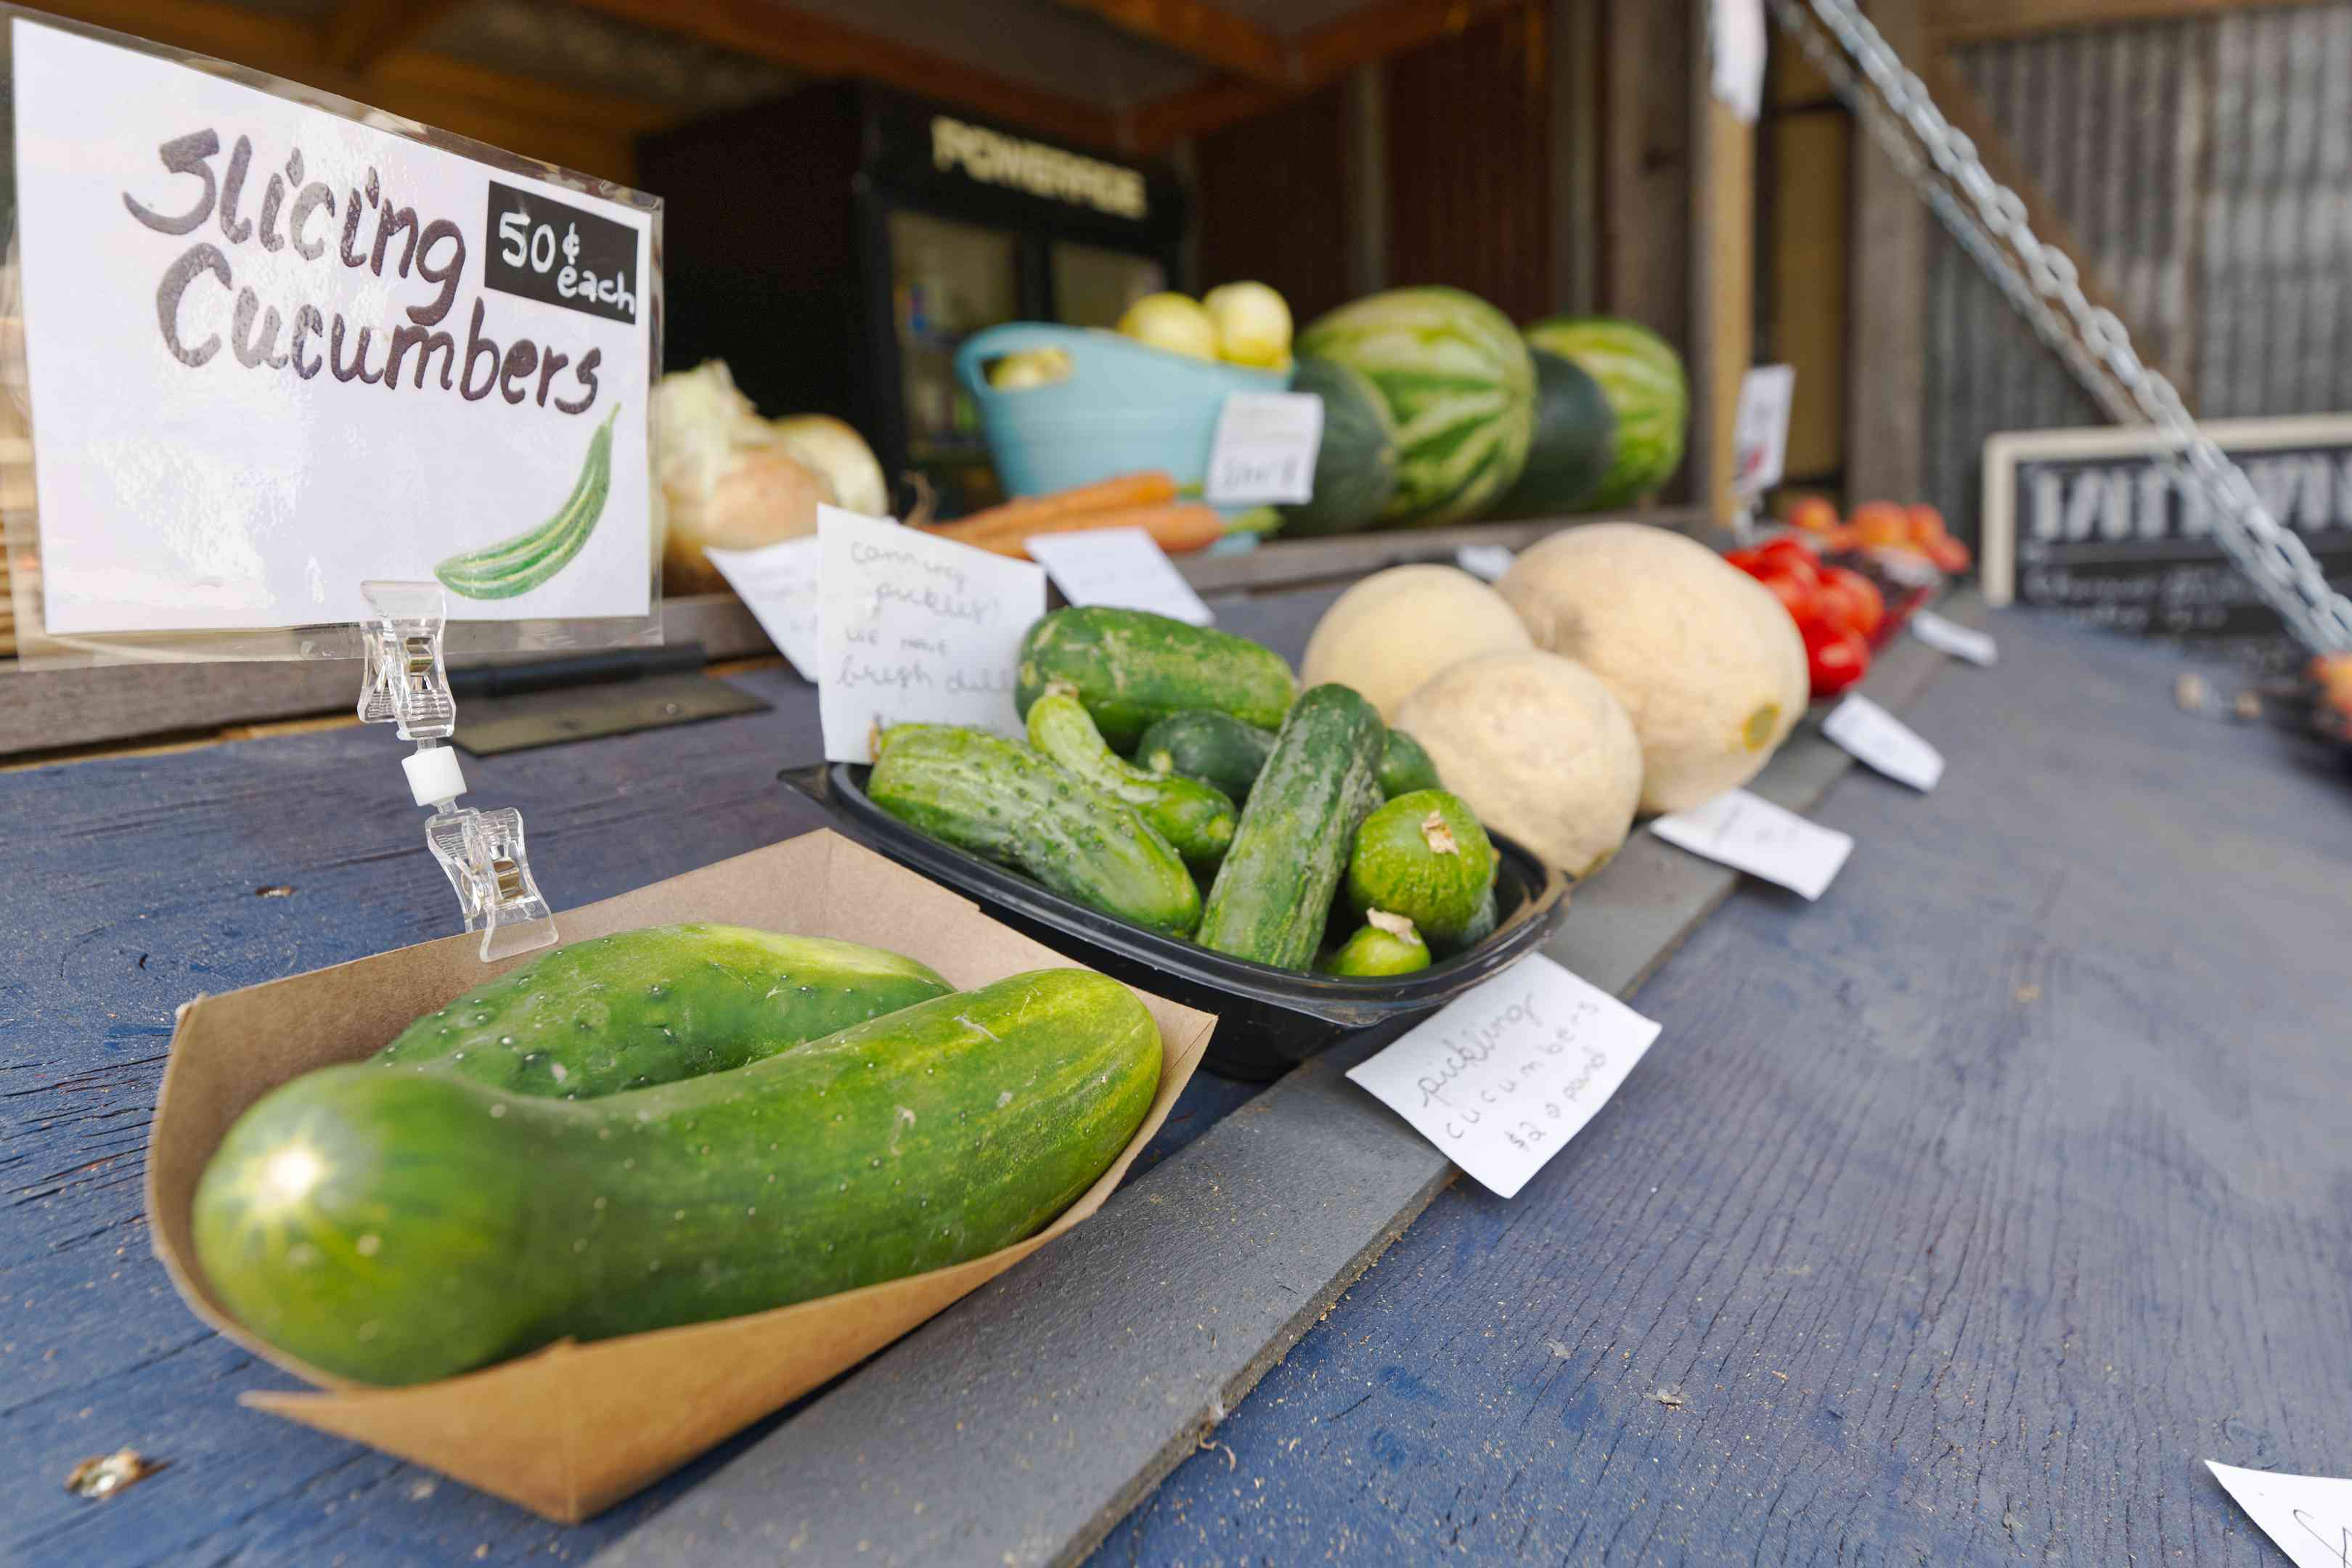 outdoor farmers market storefront with slicing cucumbers for sampling